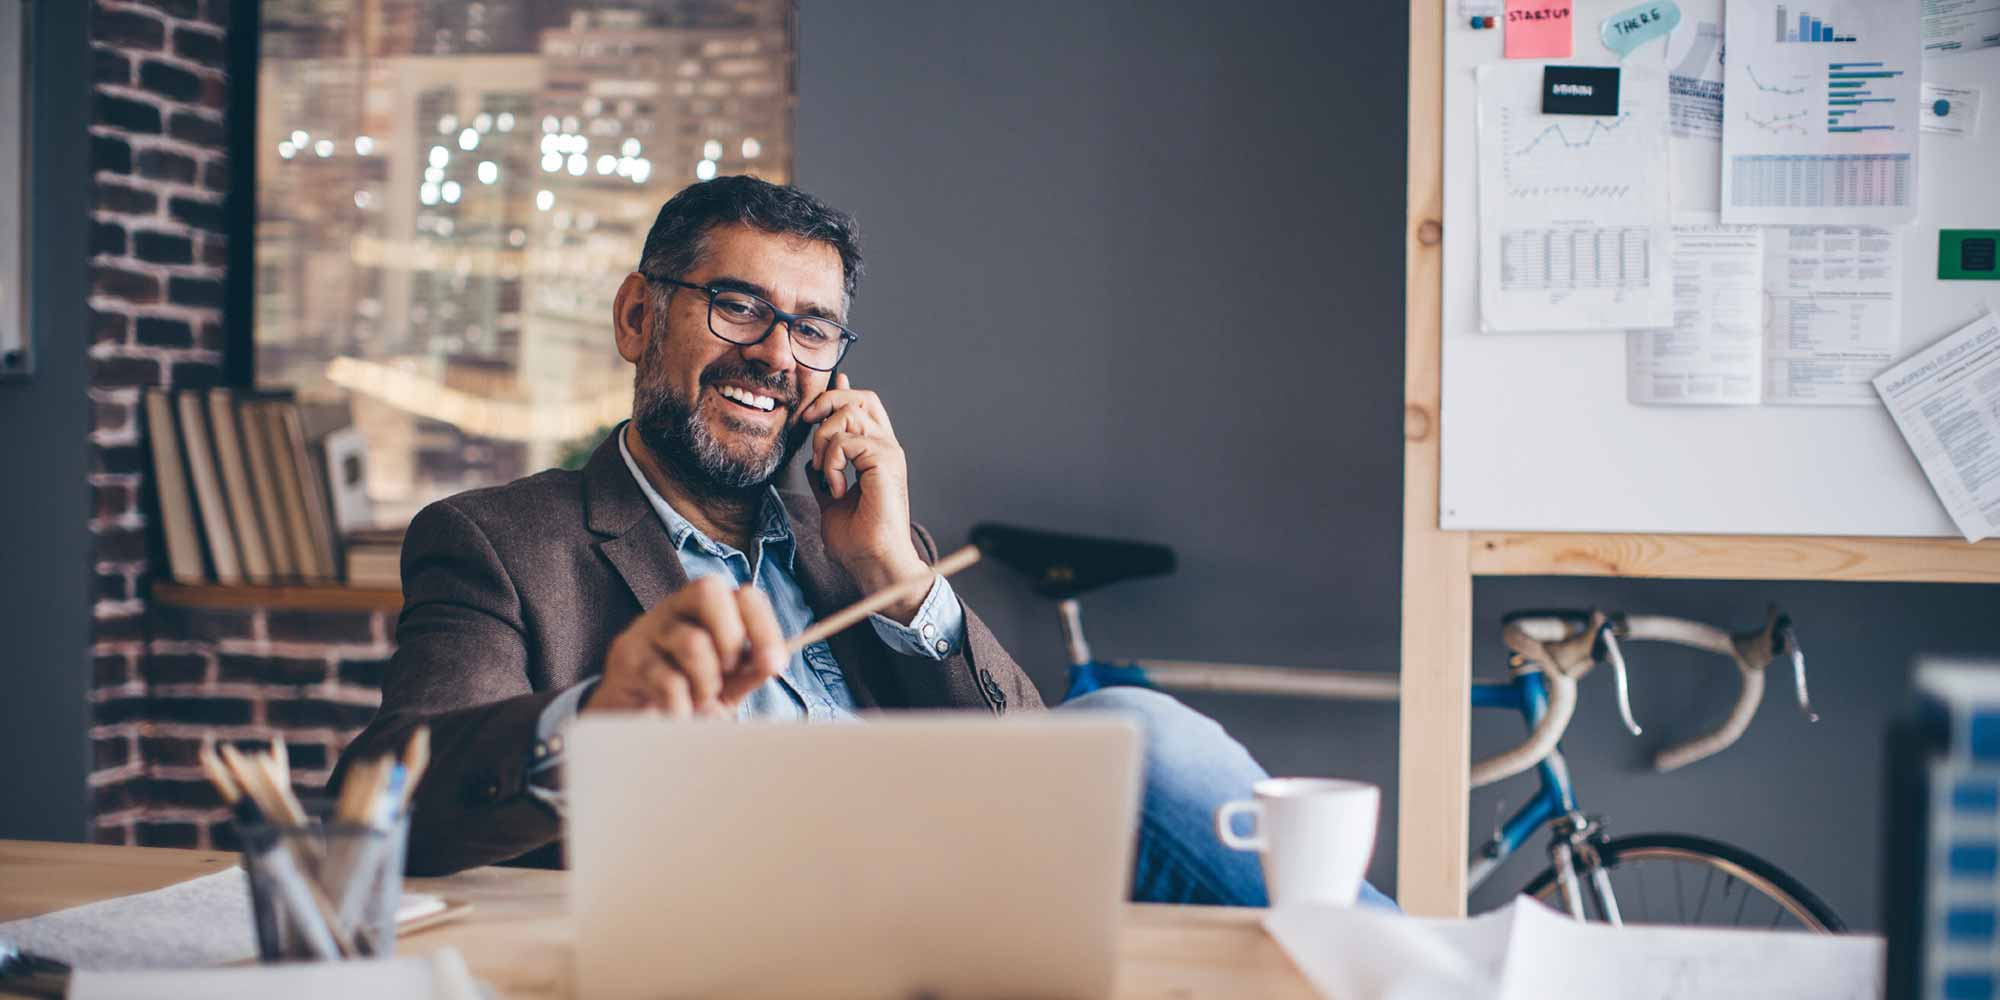 smiling businessman on phone at desk in front of laptop